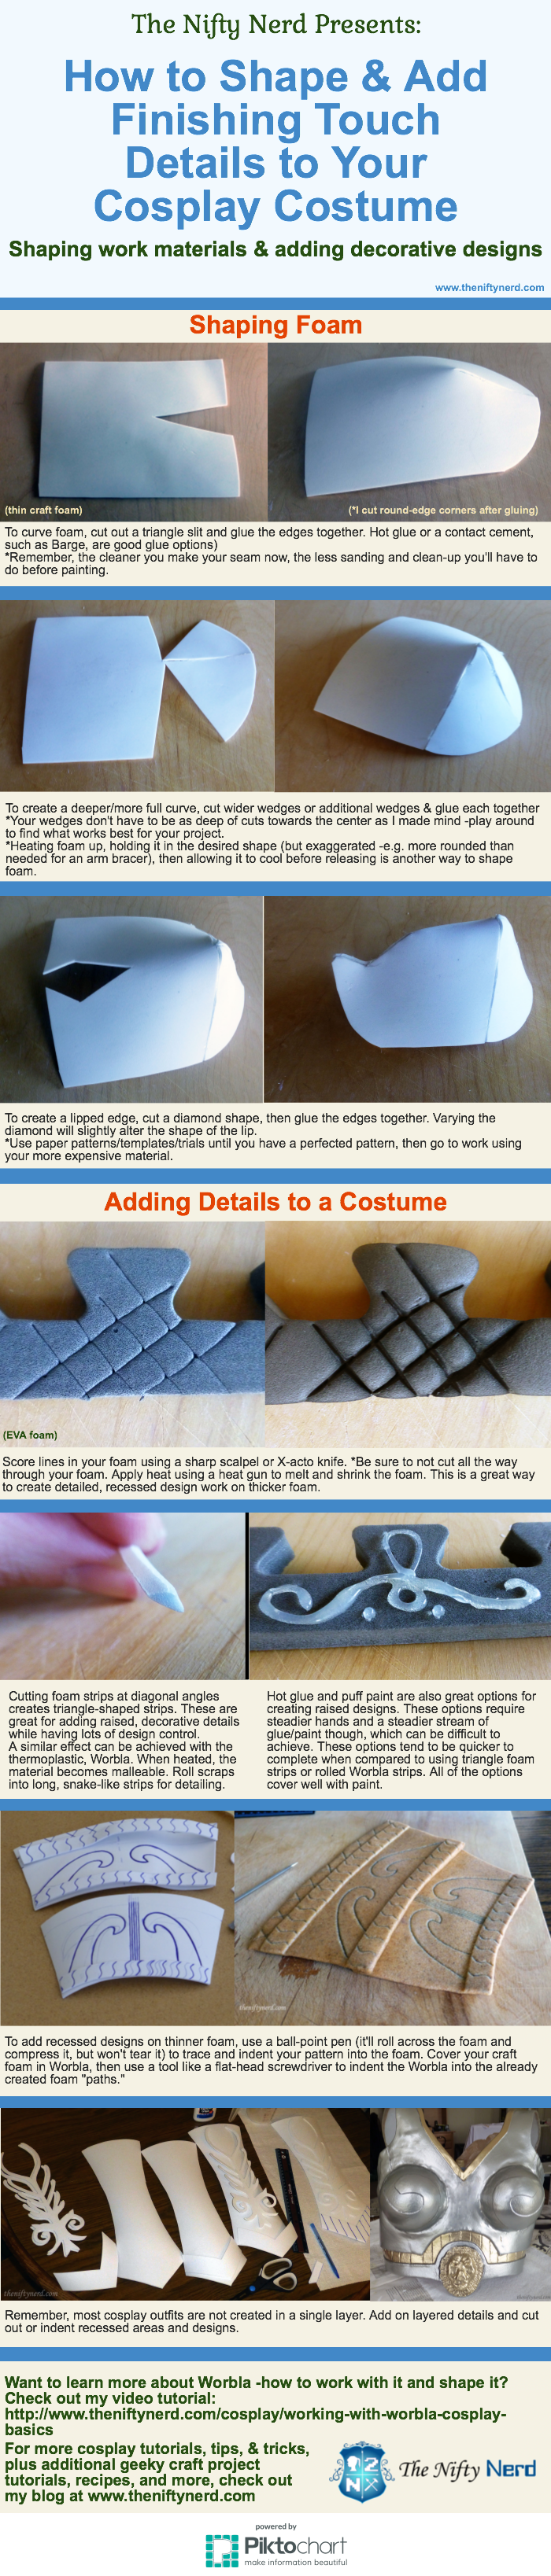 Infographic on adding cosplay costume details and shaping foam